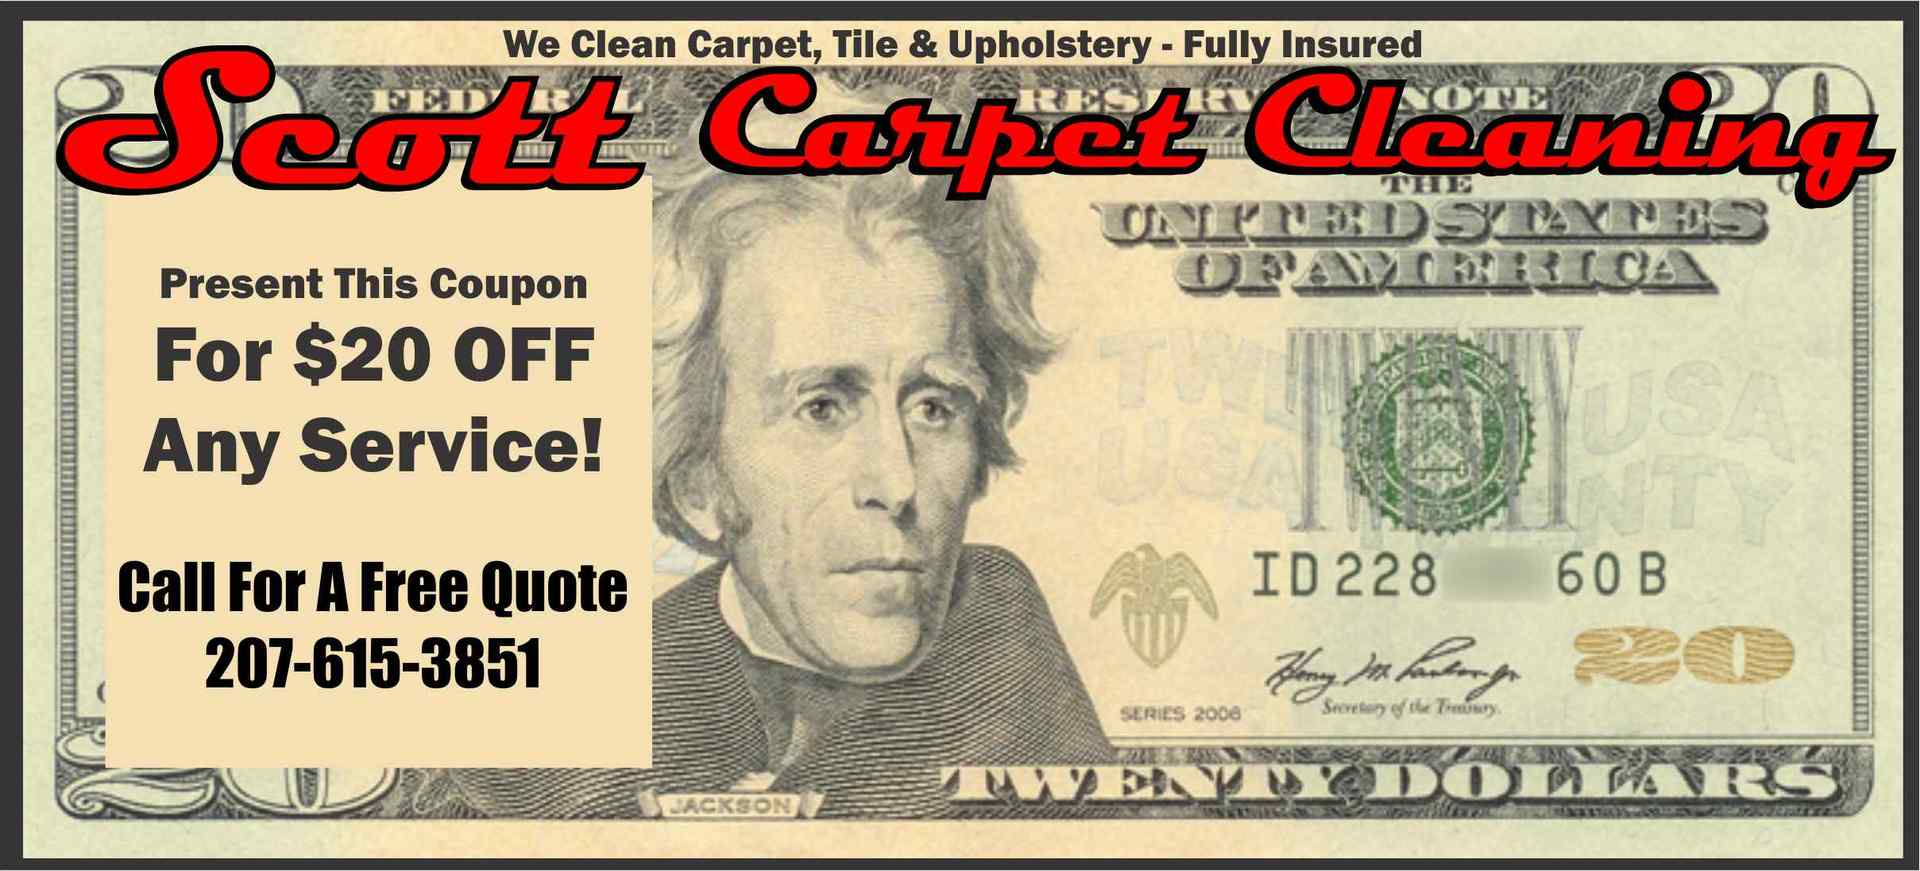 Print Coupon for Scott Carpet Cleaning Discount on Carpet, Tile, Upholstery, Boat, or RV Cleaning